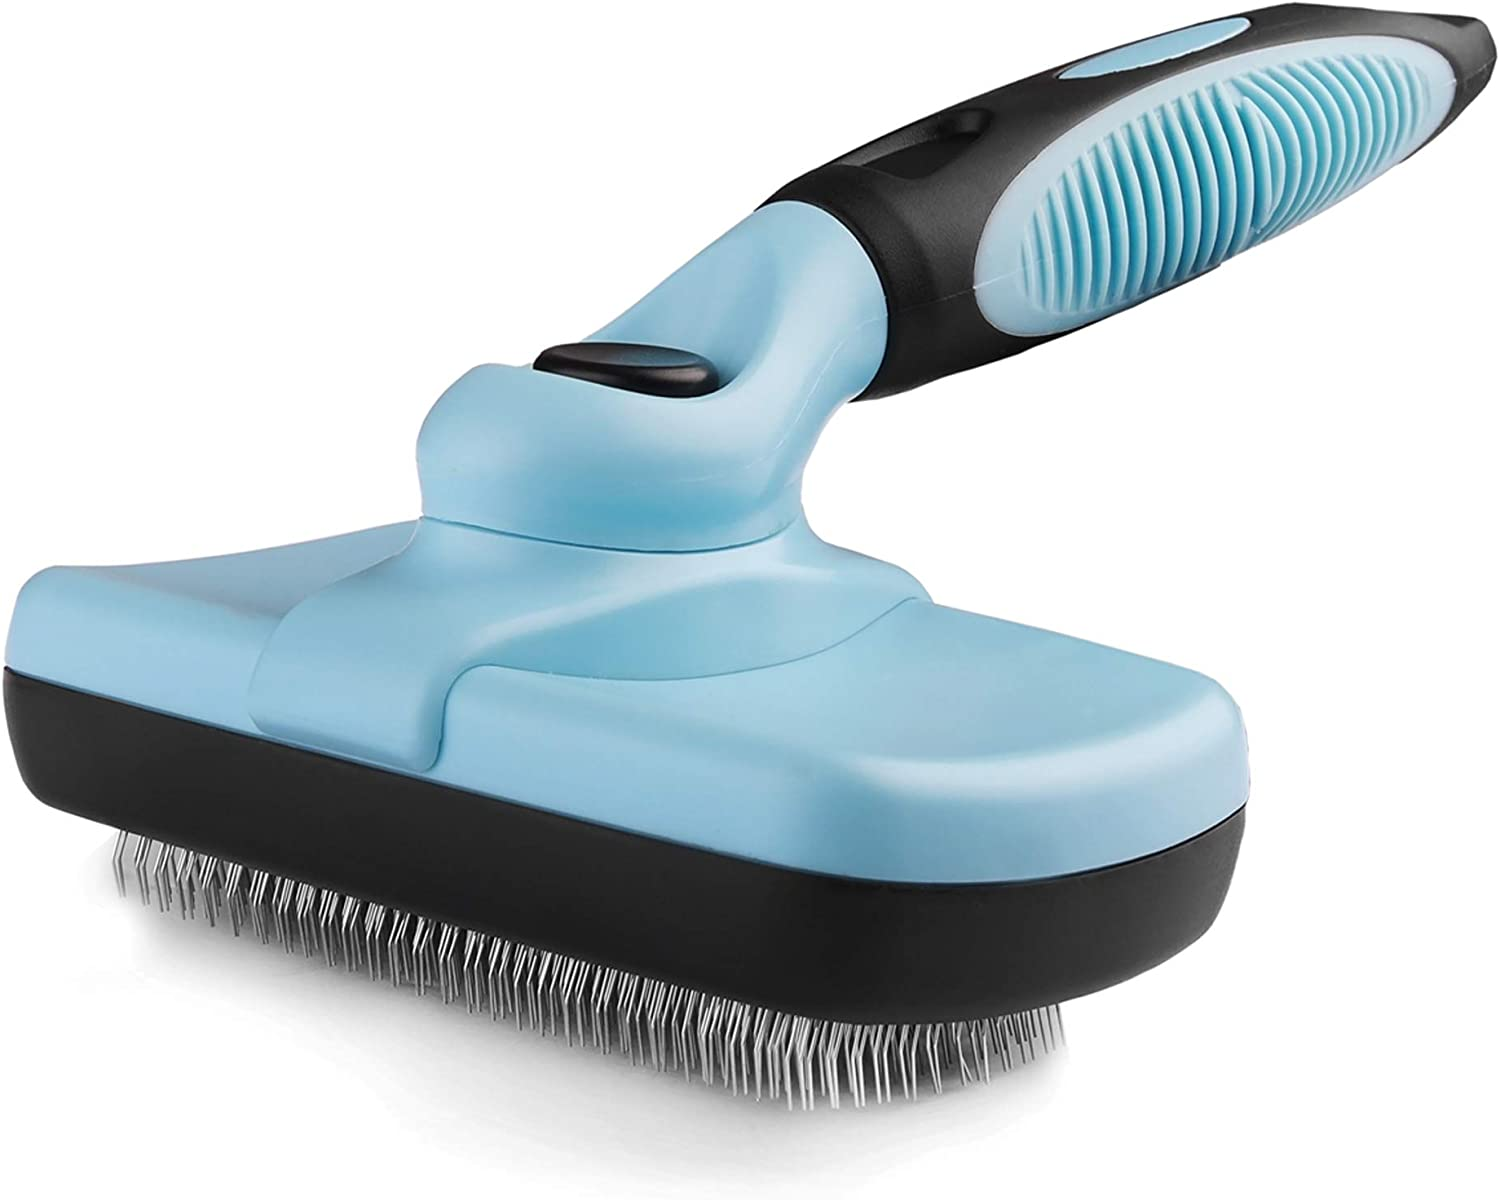 Pets First SELF CLEANING SLICKER BRUSH for PETS DOGS & CATS - Retractable Design for Quick & Easy Pet Fur Removal - Fine & SAFE Bristles To Detangle & Massage DOG SKIN or CAT SKIN – NEW SPECIAL DESIGN